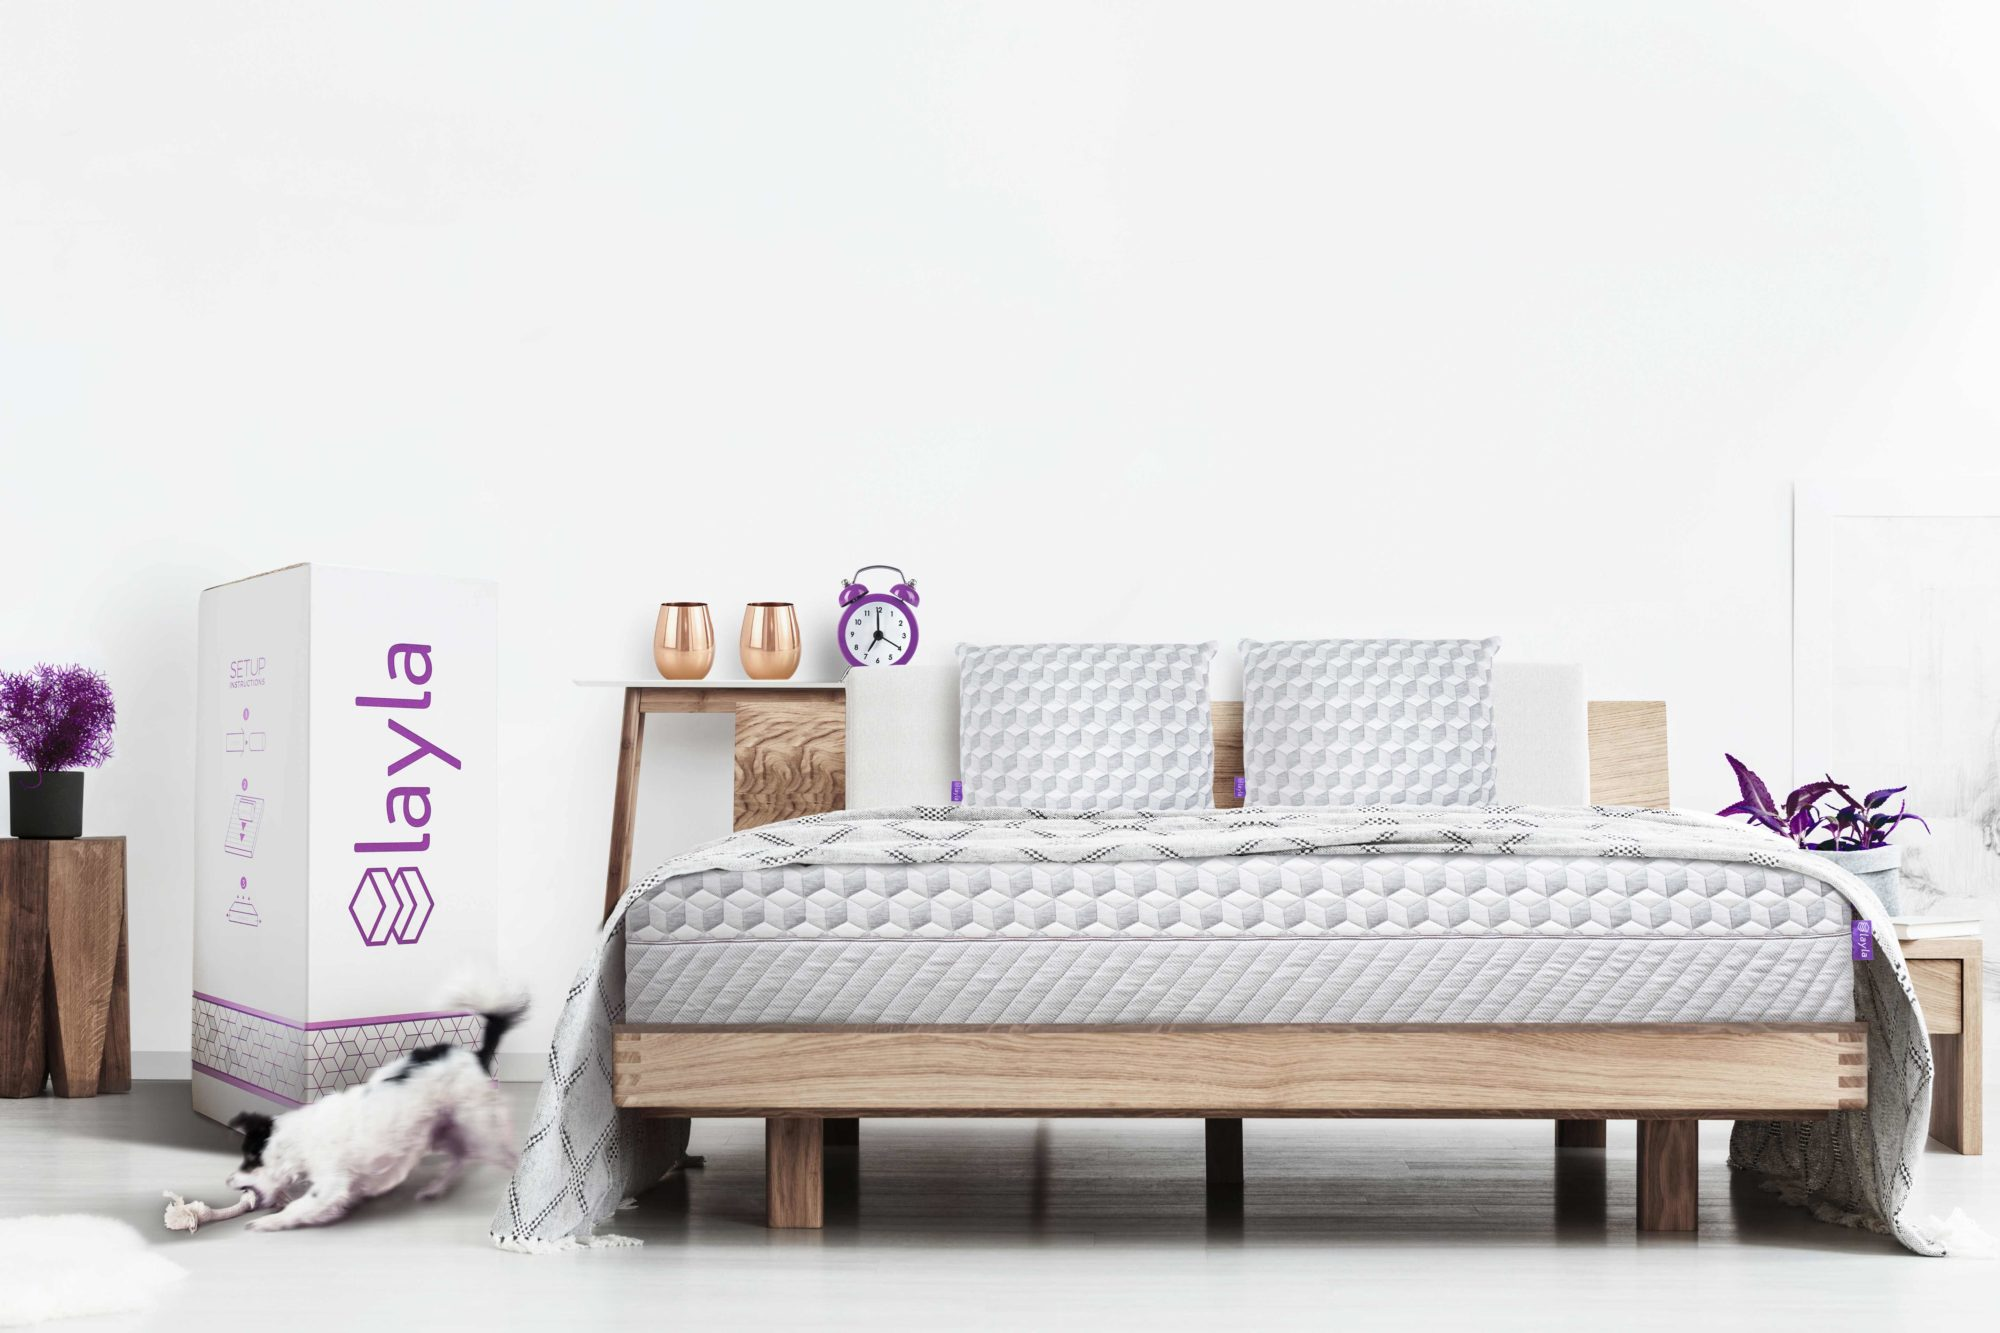 What Kind Of Mattress Is Good For Back Pain Best Firm Mattress 2019 Our Top 5 Picks From Budget To Premium